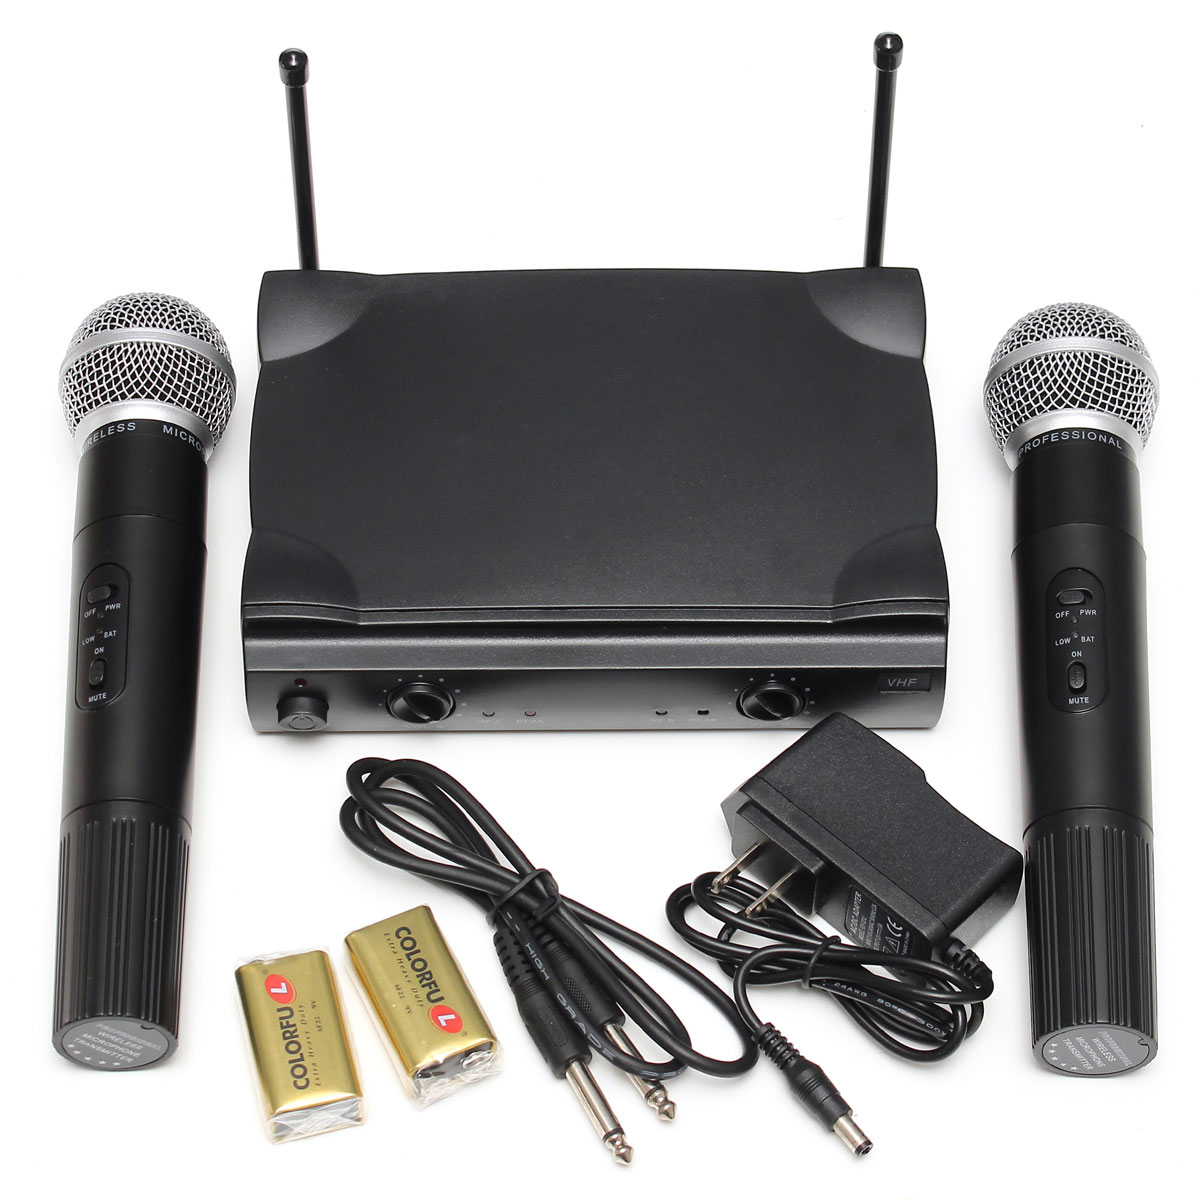 Pro Dual Wireless Microphone System VHF With Handheld Cordless UT4 Type MIC Set For Conference, Church, School, Hall, Family, Party